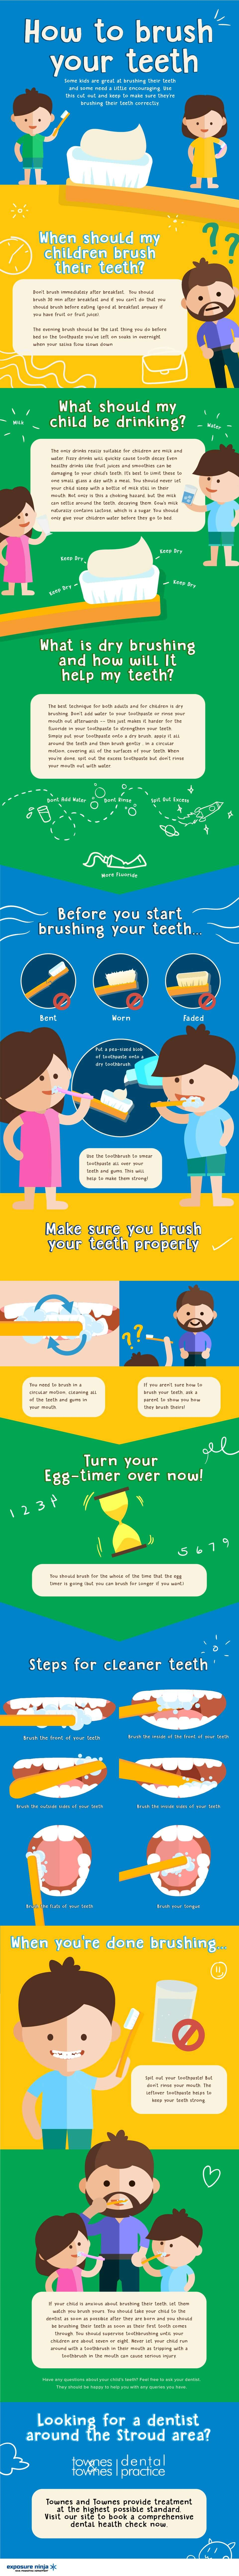 How to Brush Your Teeth by Townes & Townes Dental Practice